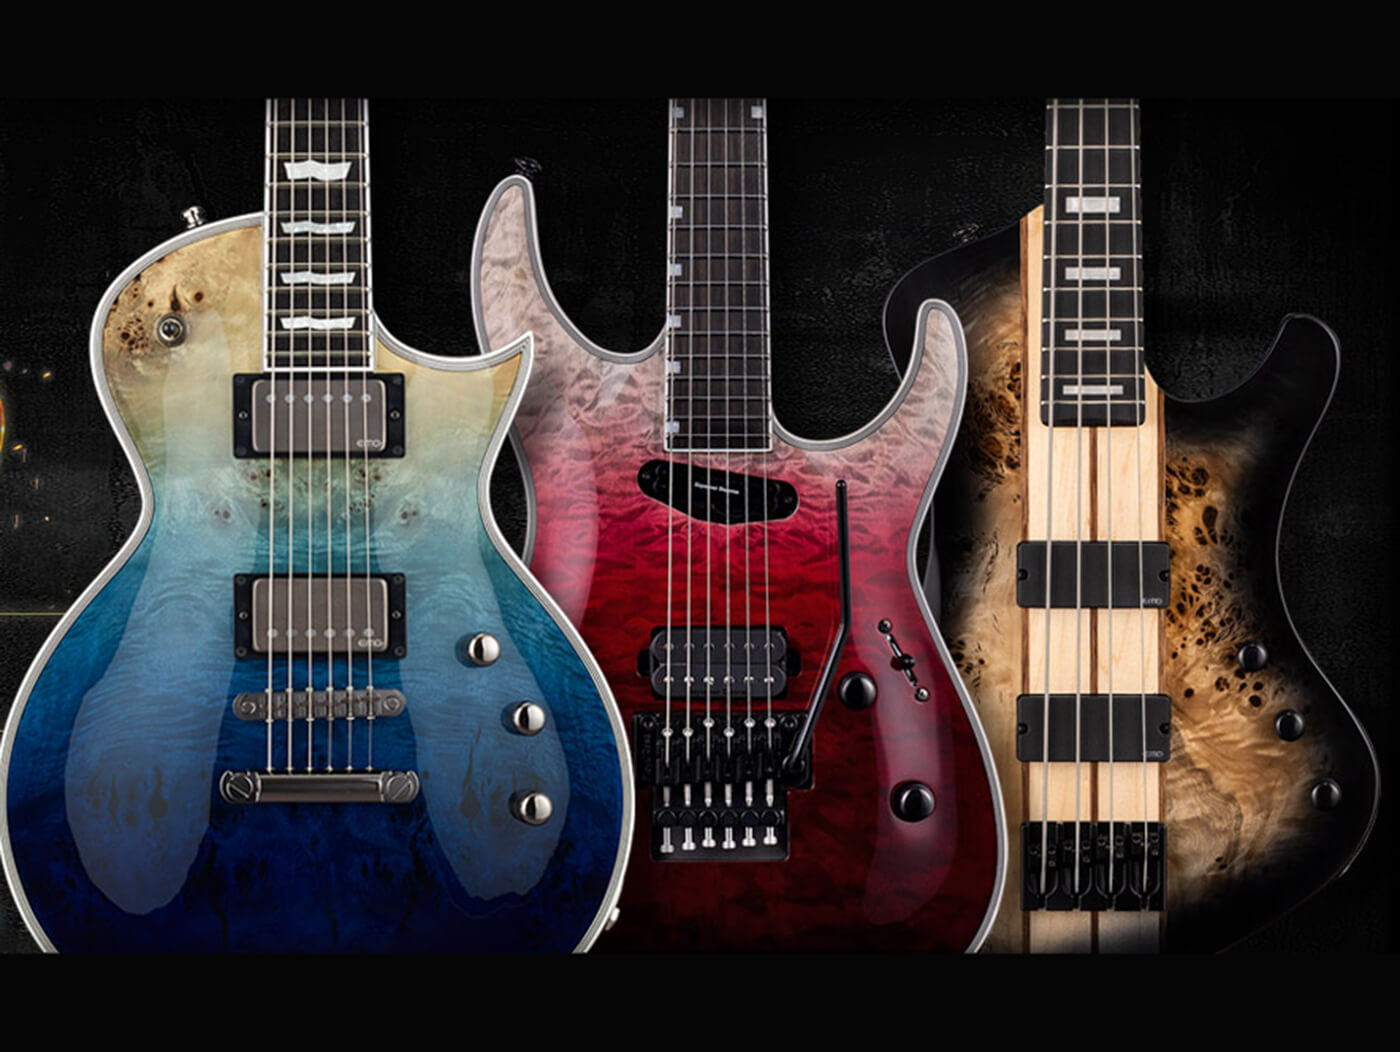 NAMM 2019: ESP offers a peek at its full 2019 line-up